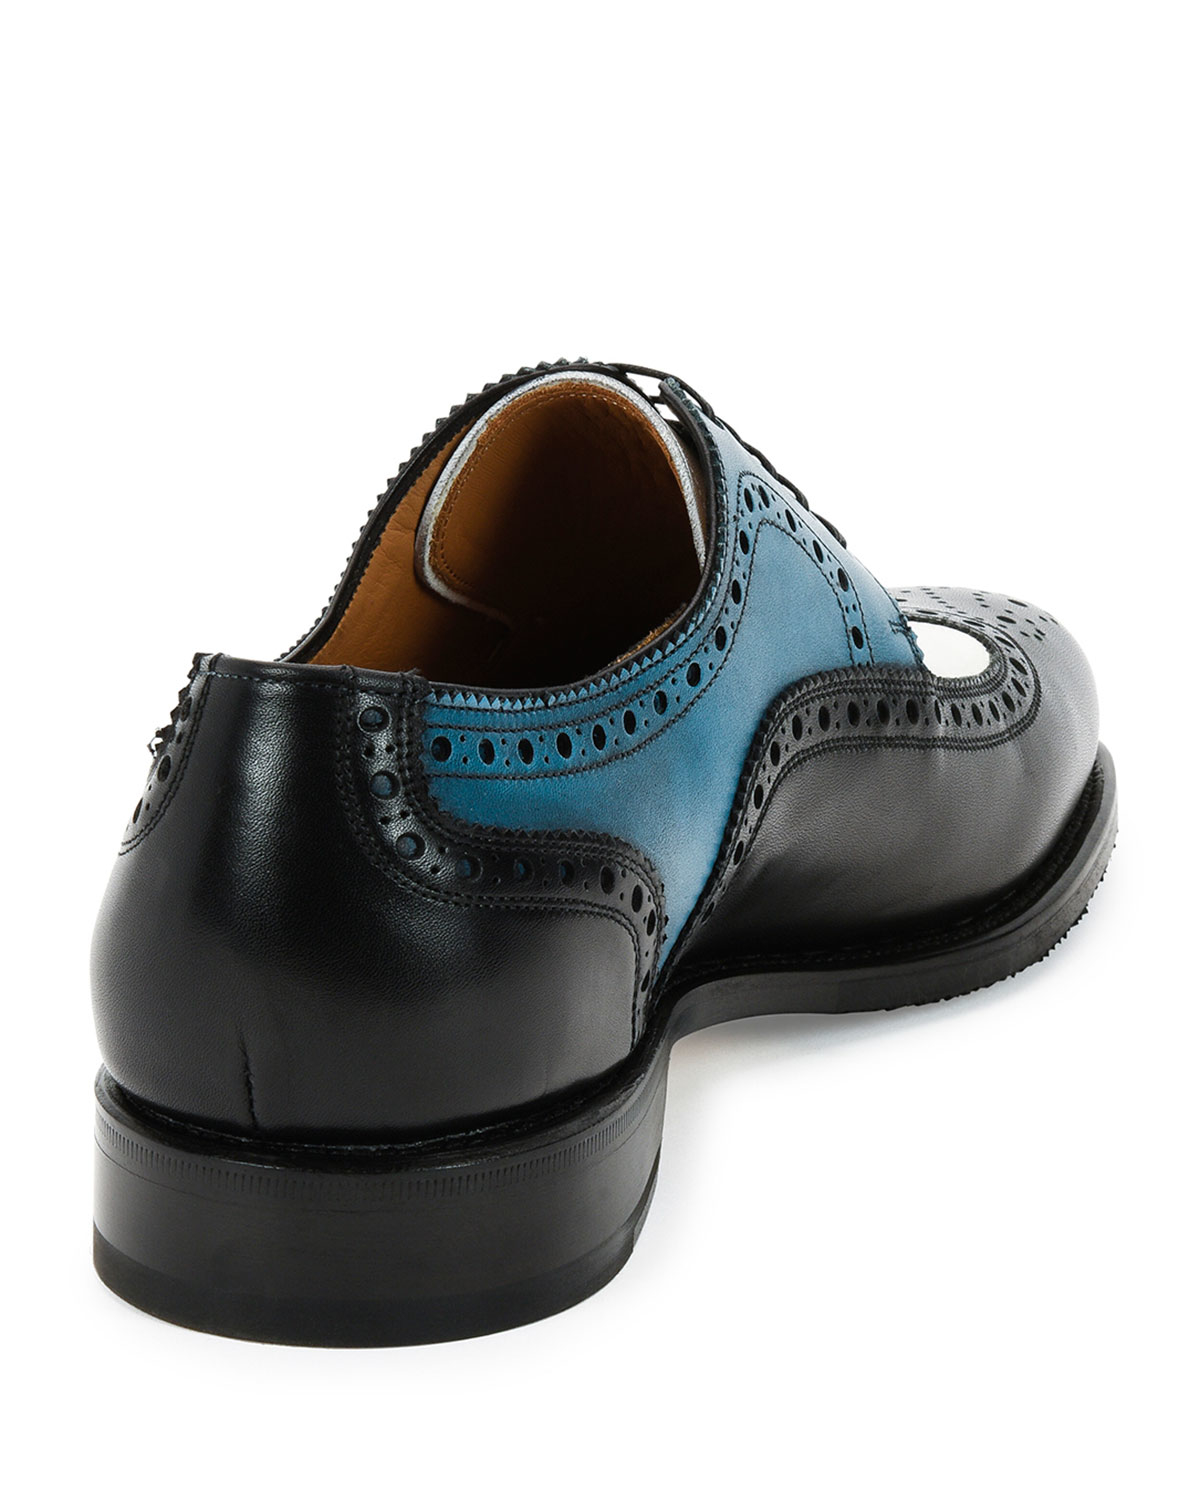 classic lace-up brogues - Brown Salvatore Ferragamo Best Cheap Price Clearance Very Cheap Free Shipping View Eastbay Cheap Online vRWi5qgb